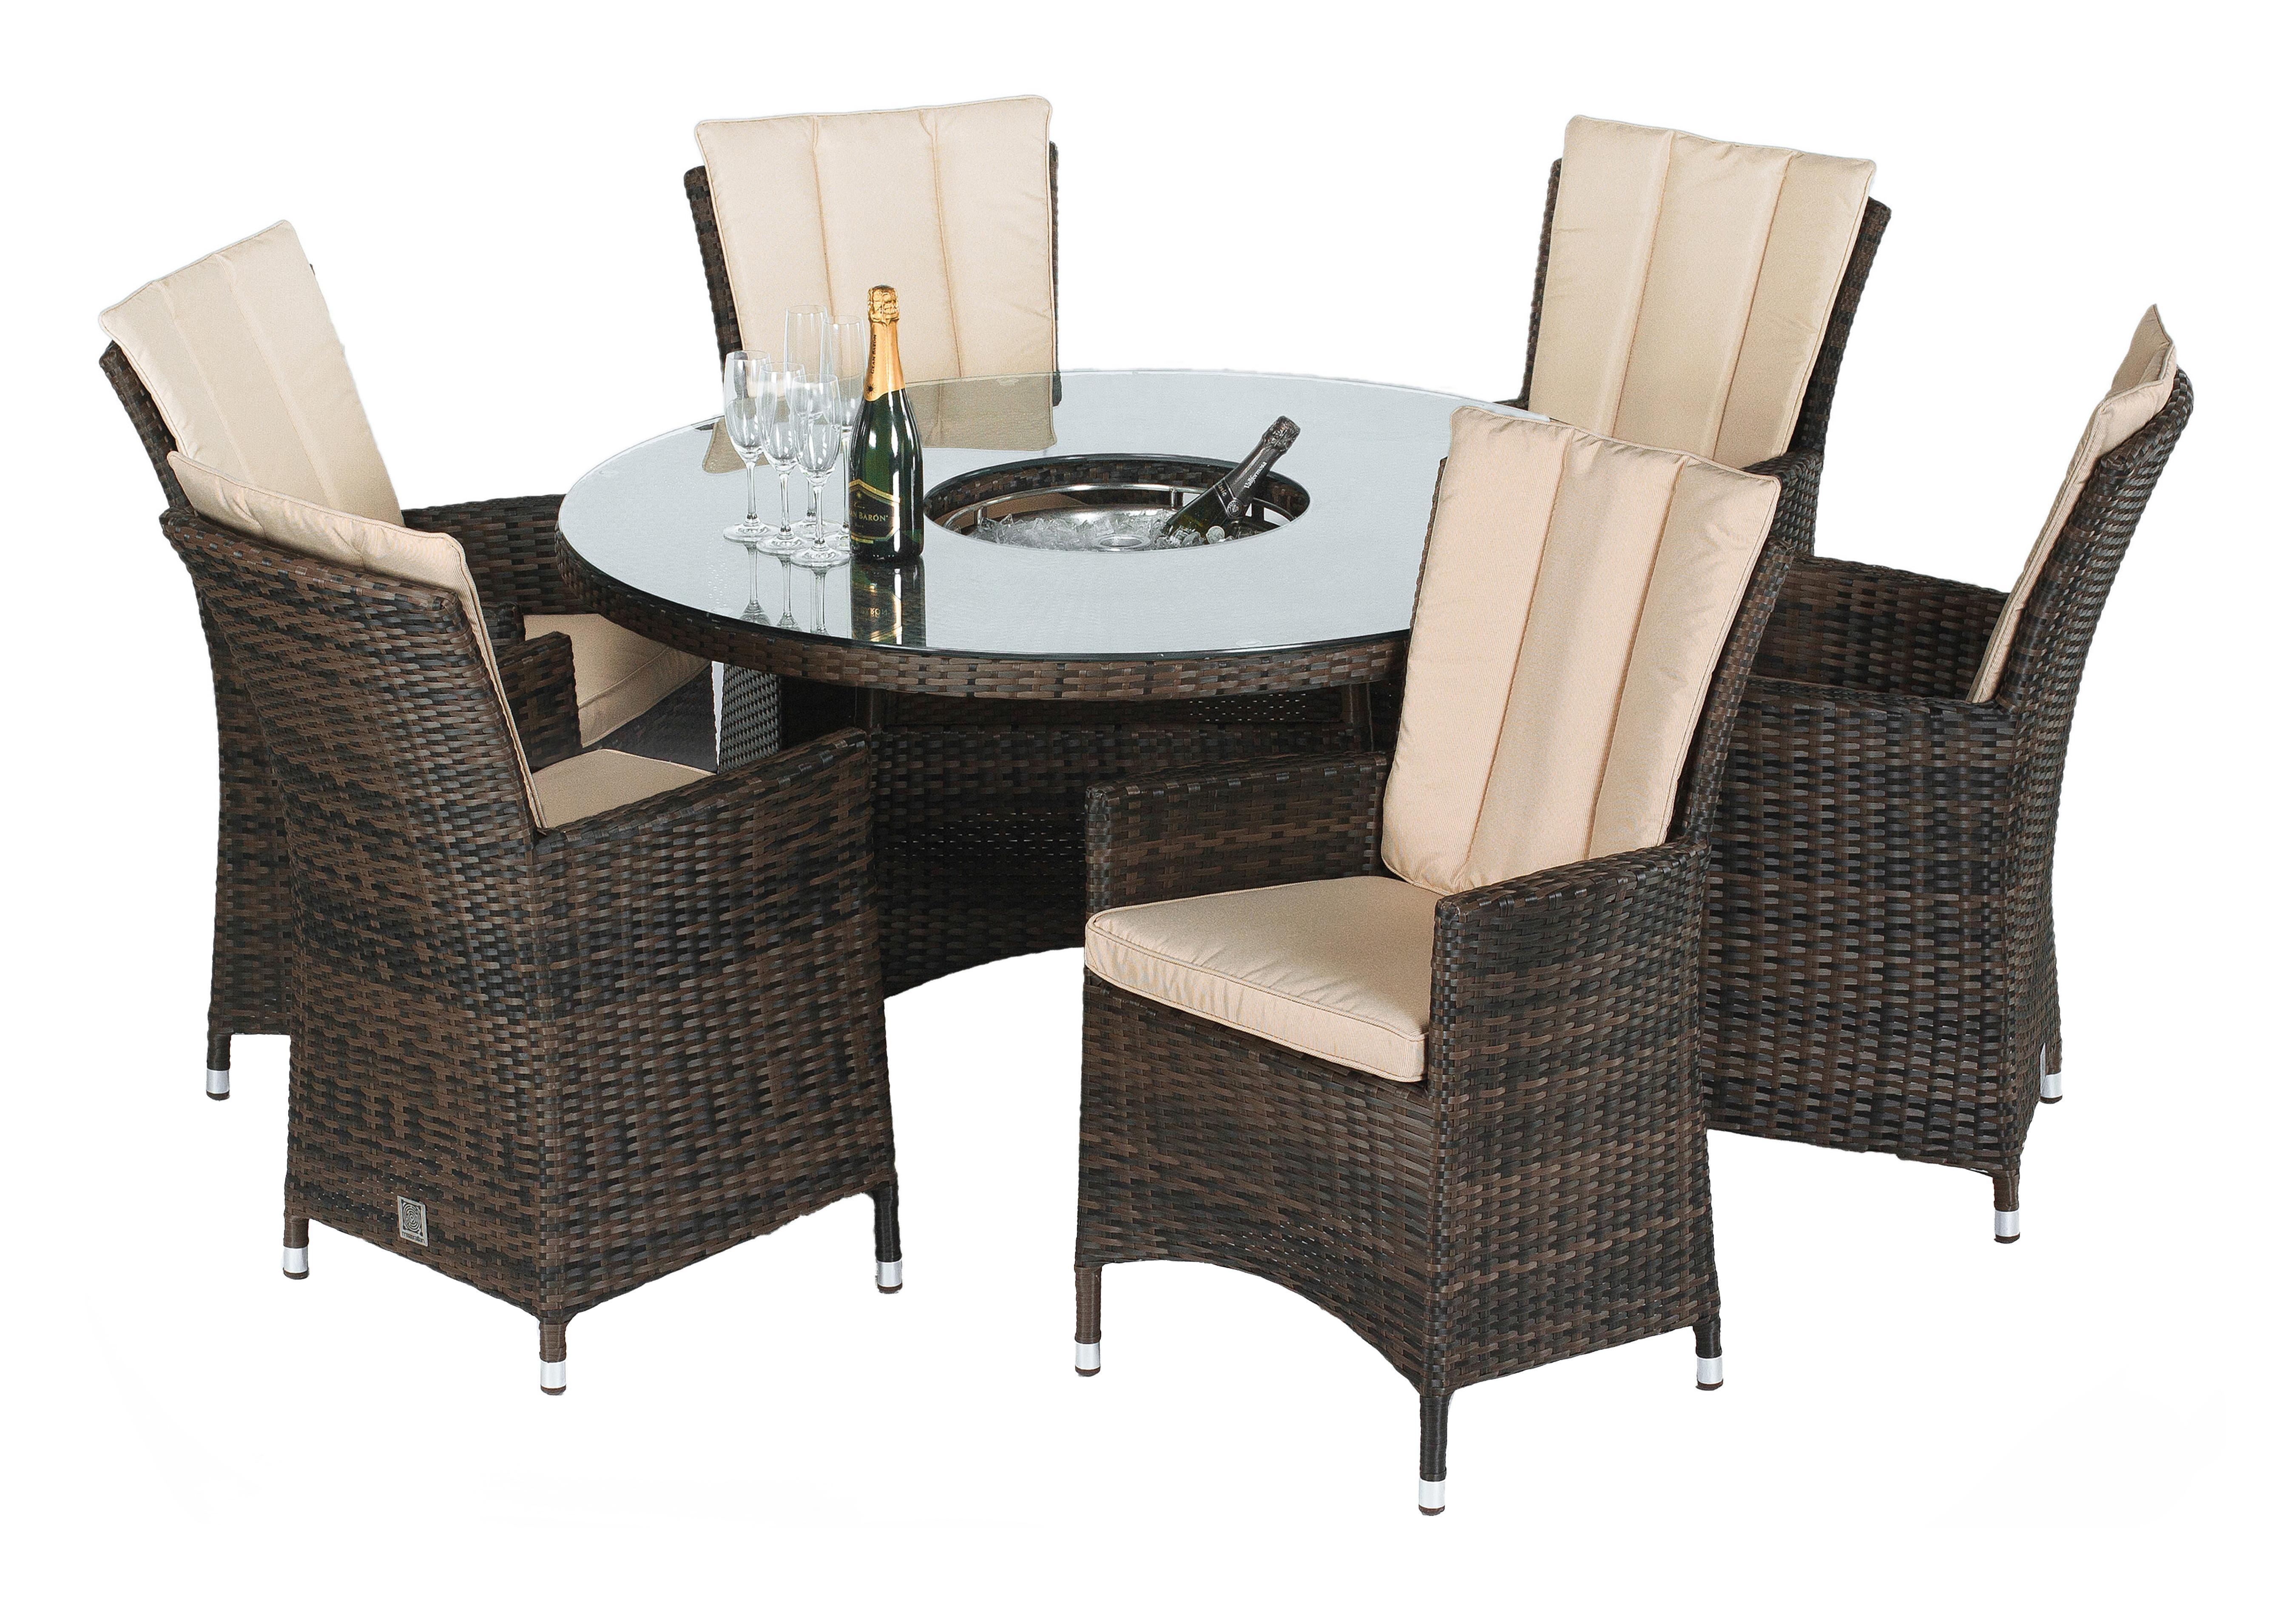 Picture of: Oasis 6 Seater Dining Set With Ice Bucket Table Parasol Furniture Village